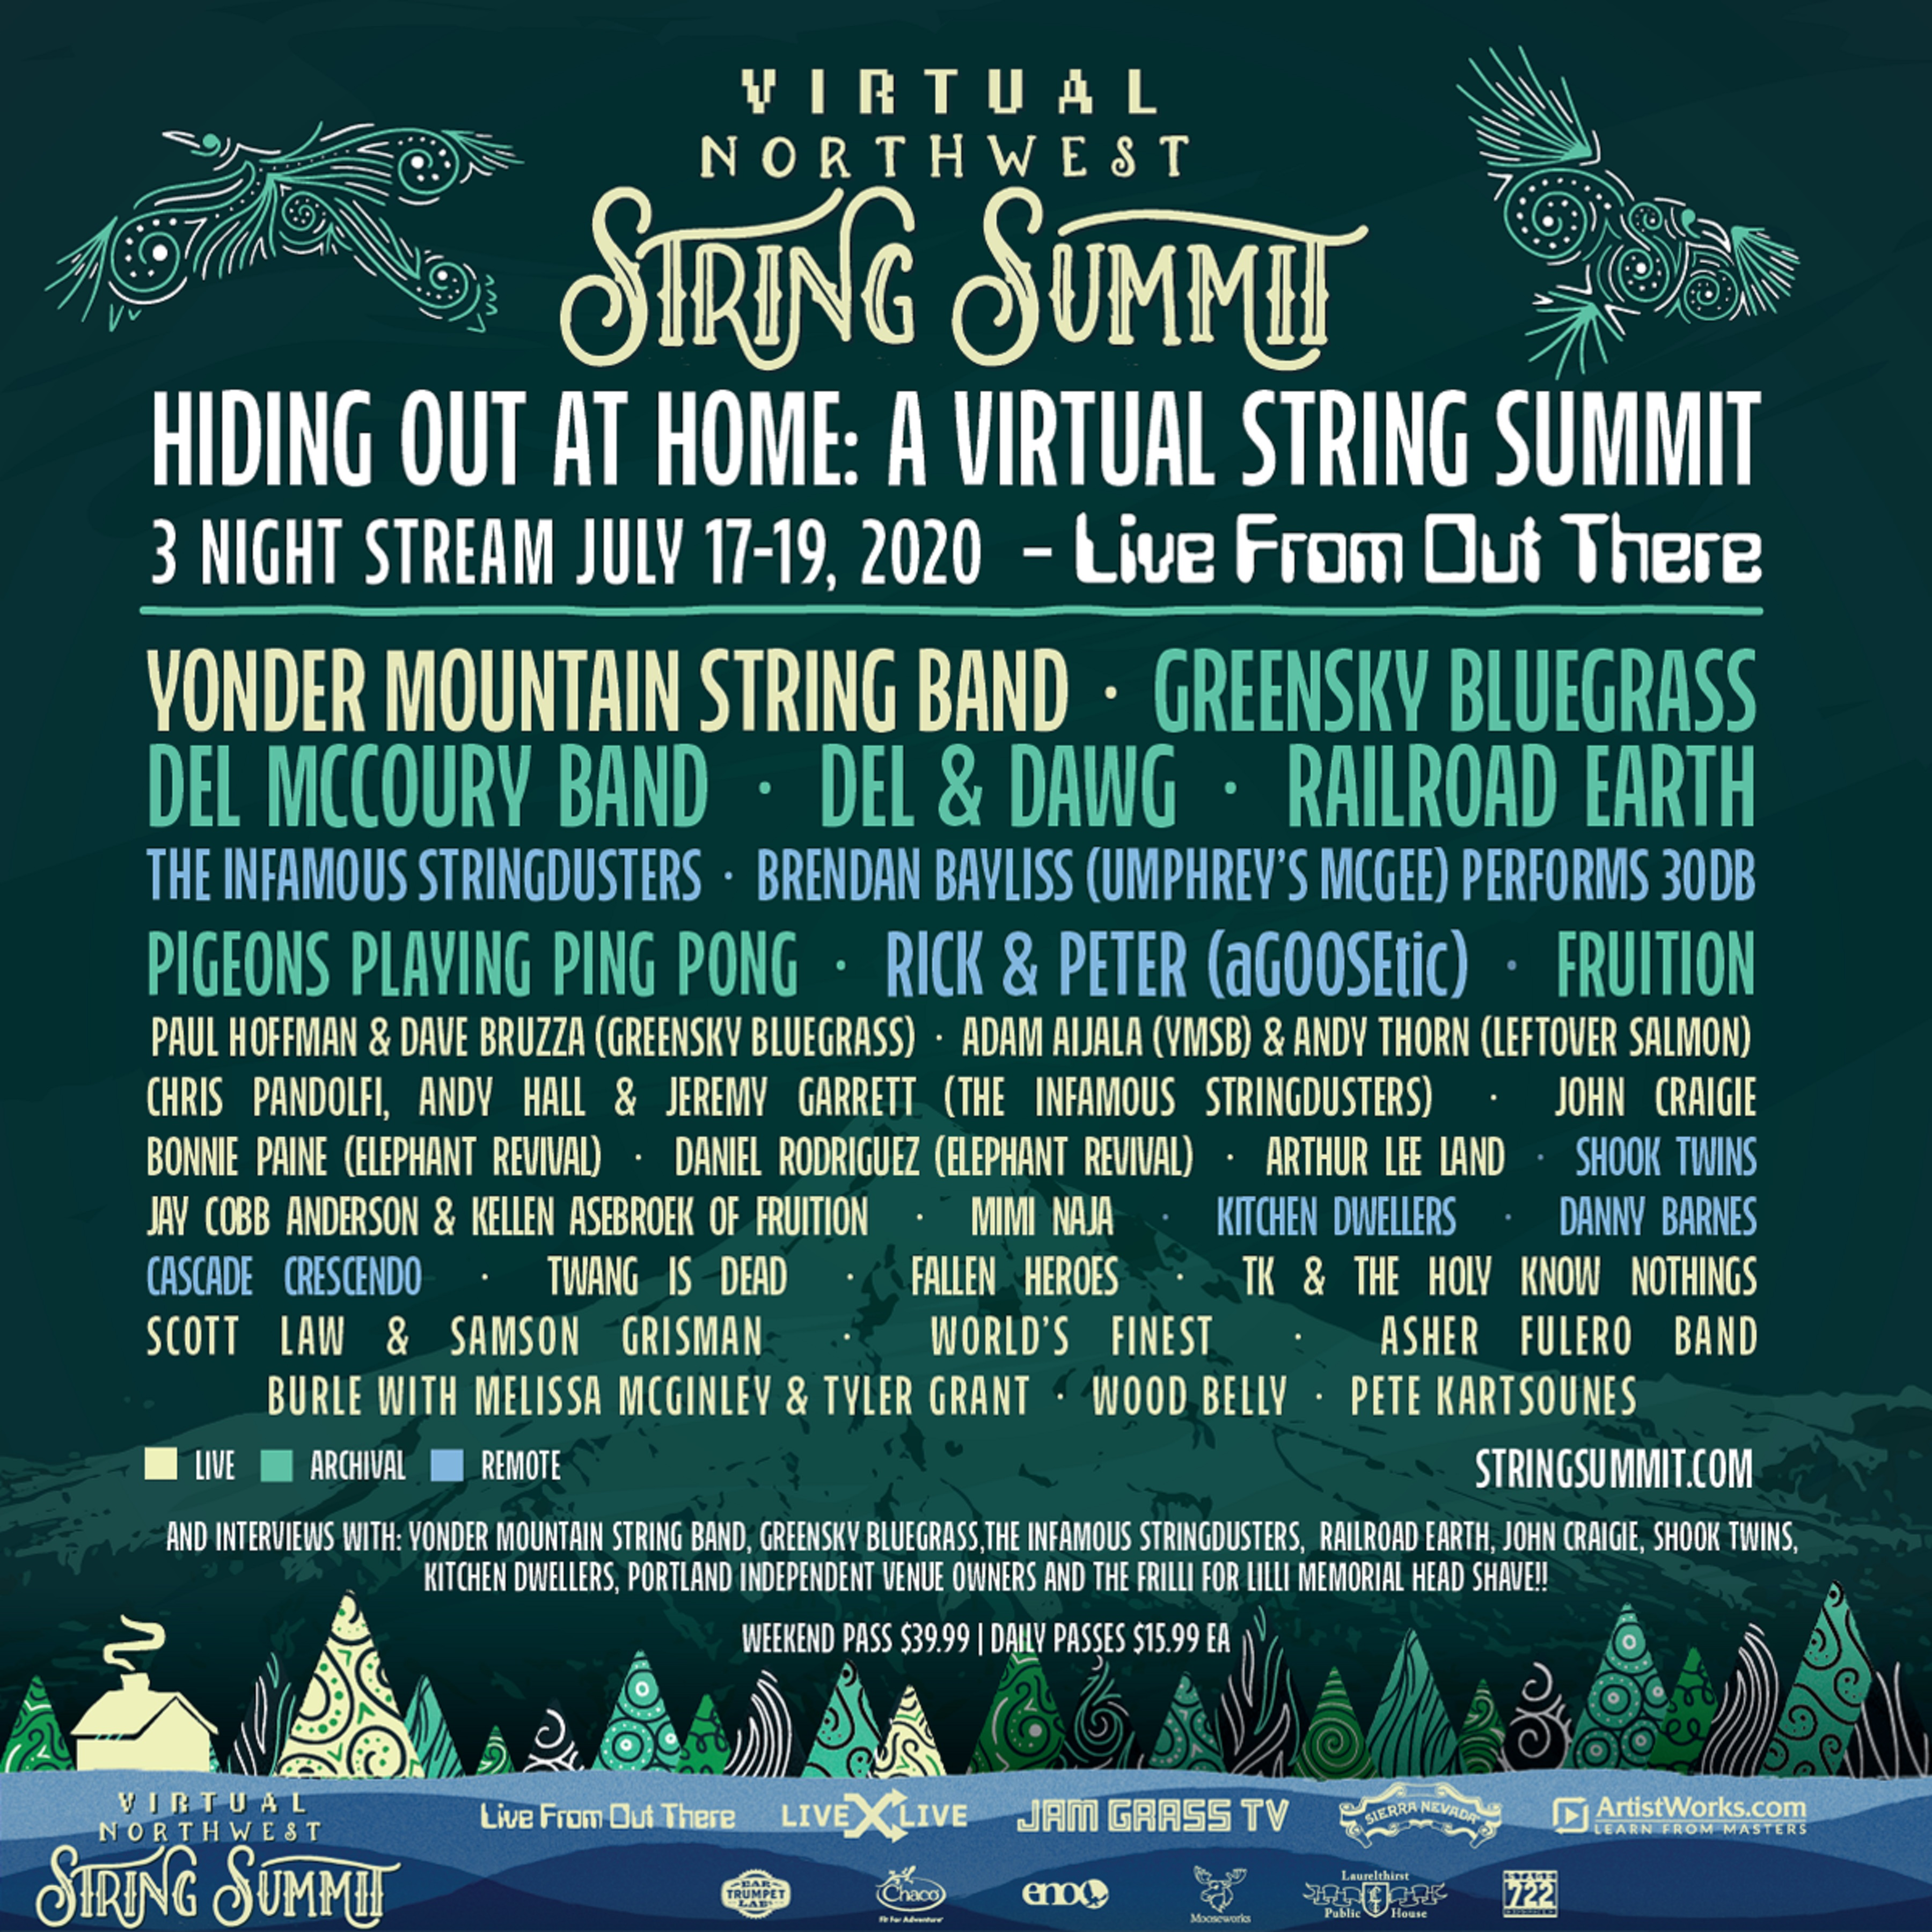 Northwest String Summit Announces Final Lineup for Hiding Out At Home